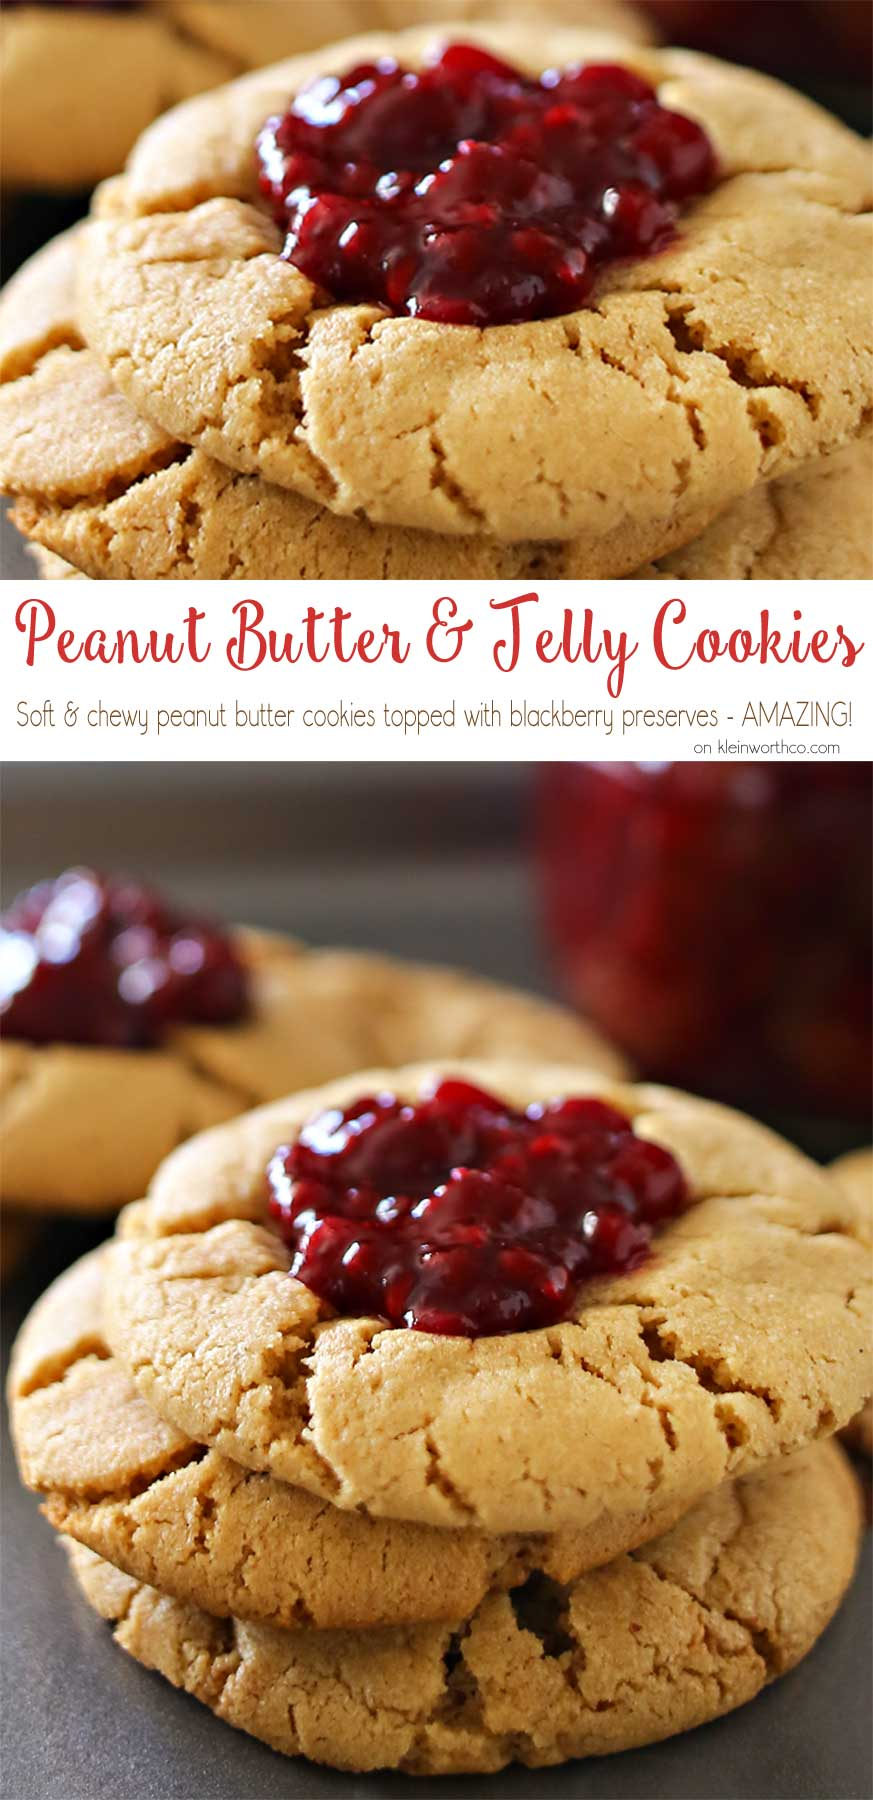 Peanut Butter & Jelly Cookies are a soft & chewy peanut butter cookie recipe topped with a dollop of blackberry preserves. Even better when you make your own jam to add on top. Easy dessert & a PB&J lovers dream! Don't miss my favorite jam recipe I share at the end too. So good!